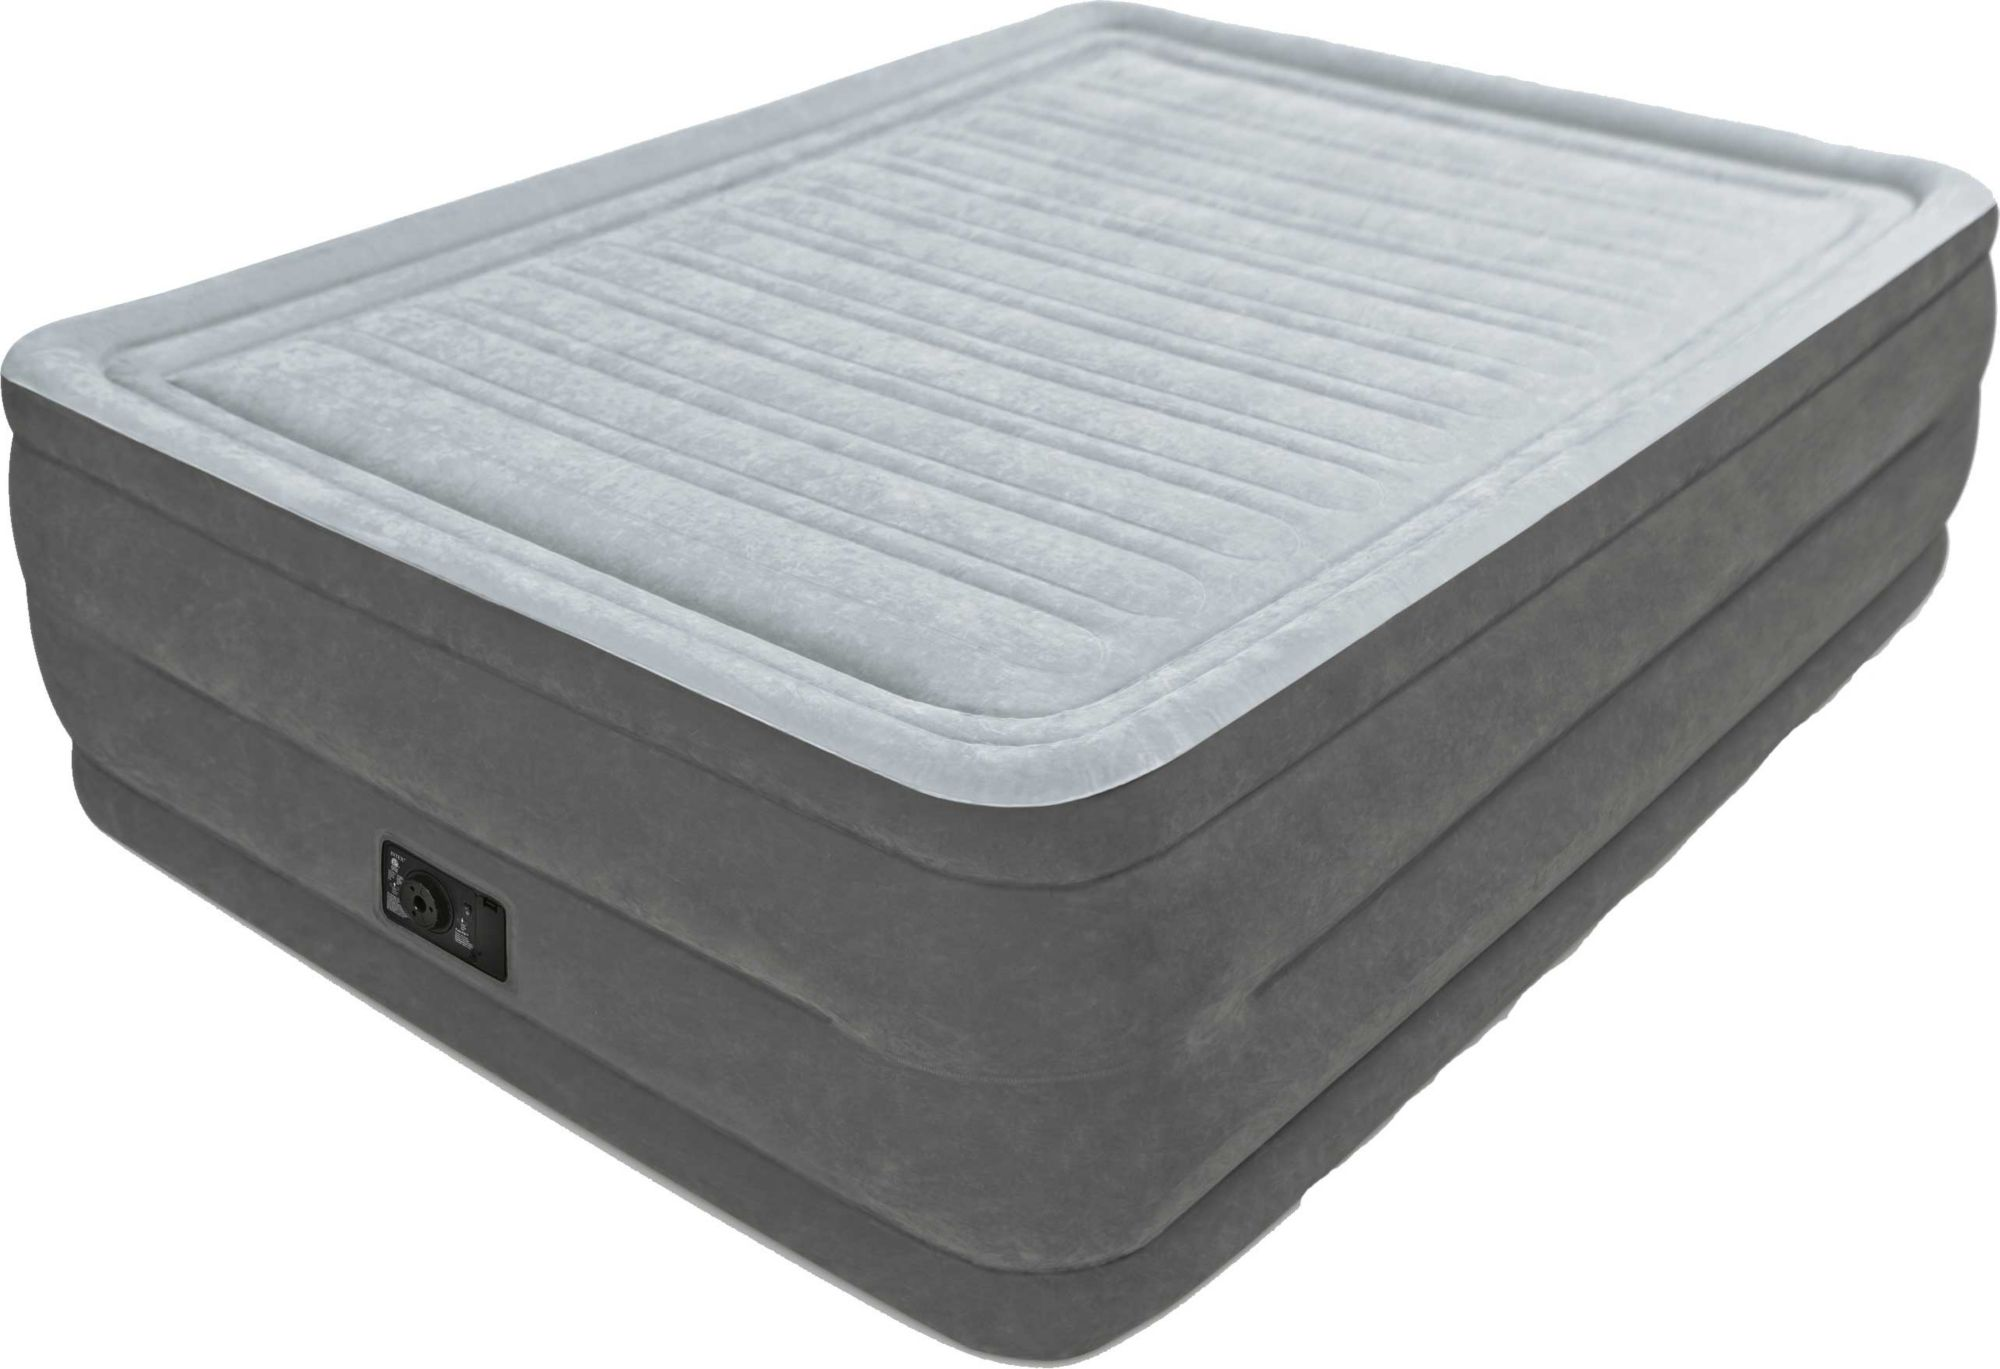 Intex Built In Pump Intex Comfort Plush Queen Air Mattress With Built In Pump